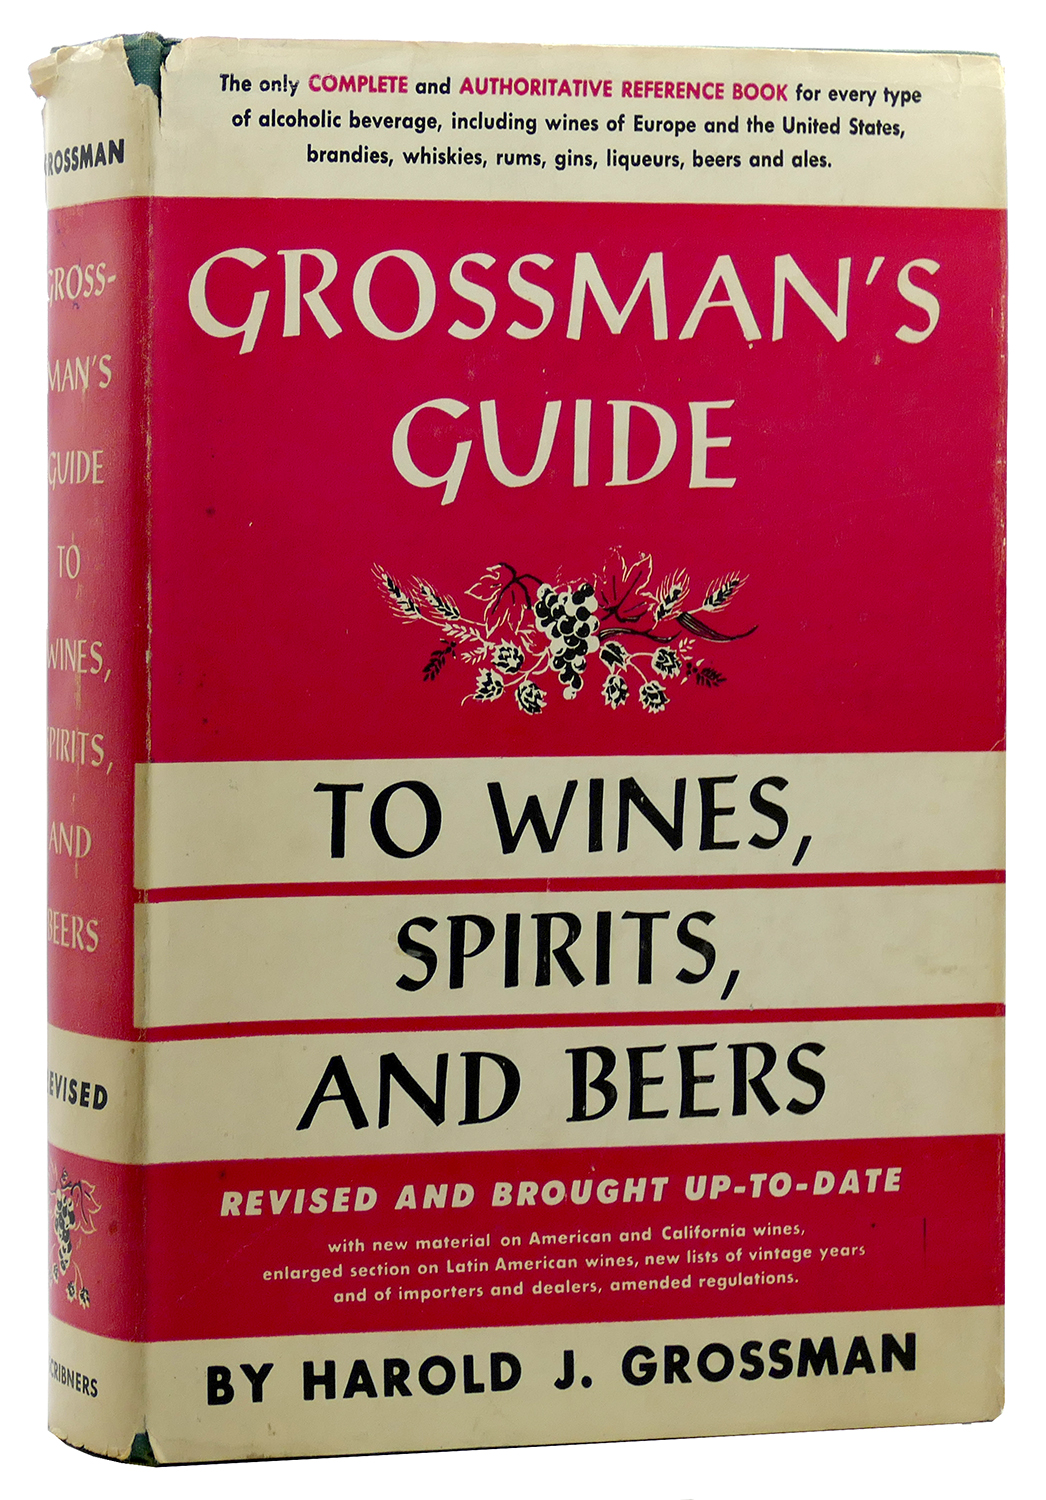 GROSSMAN'S GUIDE TO WINES, SPIRITS, AND BEERS Harold J. Grossman Hardcover Very Good in a Good price clipped dust jacket. Edge wear with chips and tears including a one inch tear on back spine edge. Some fading to spine. ; 8v